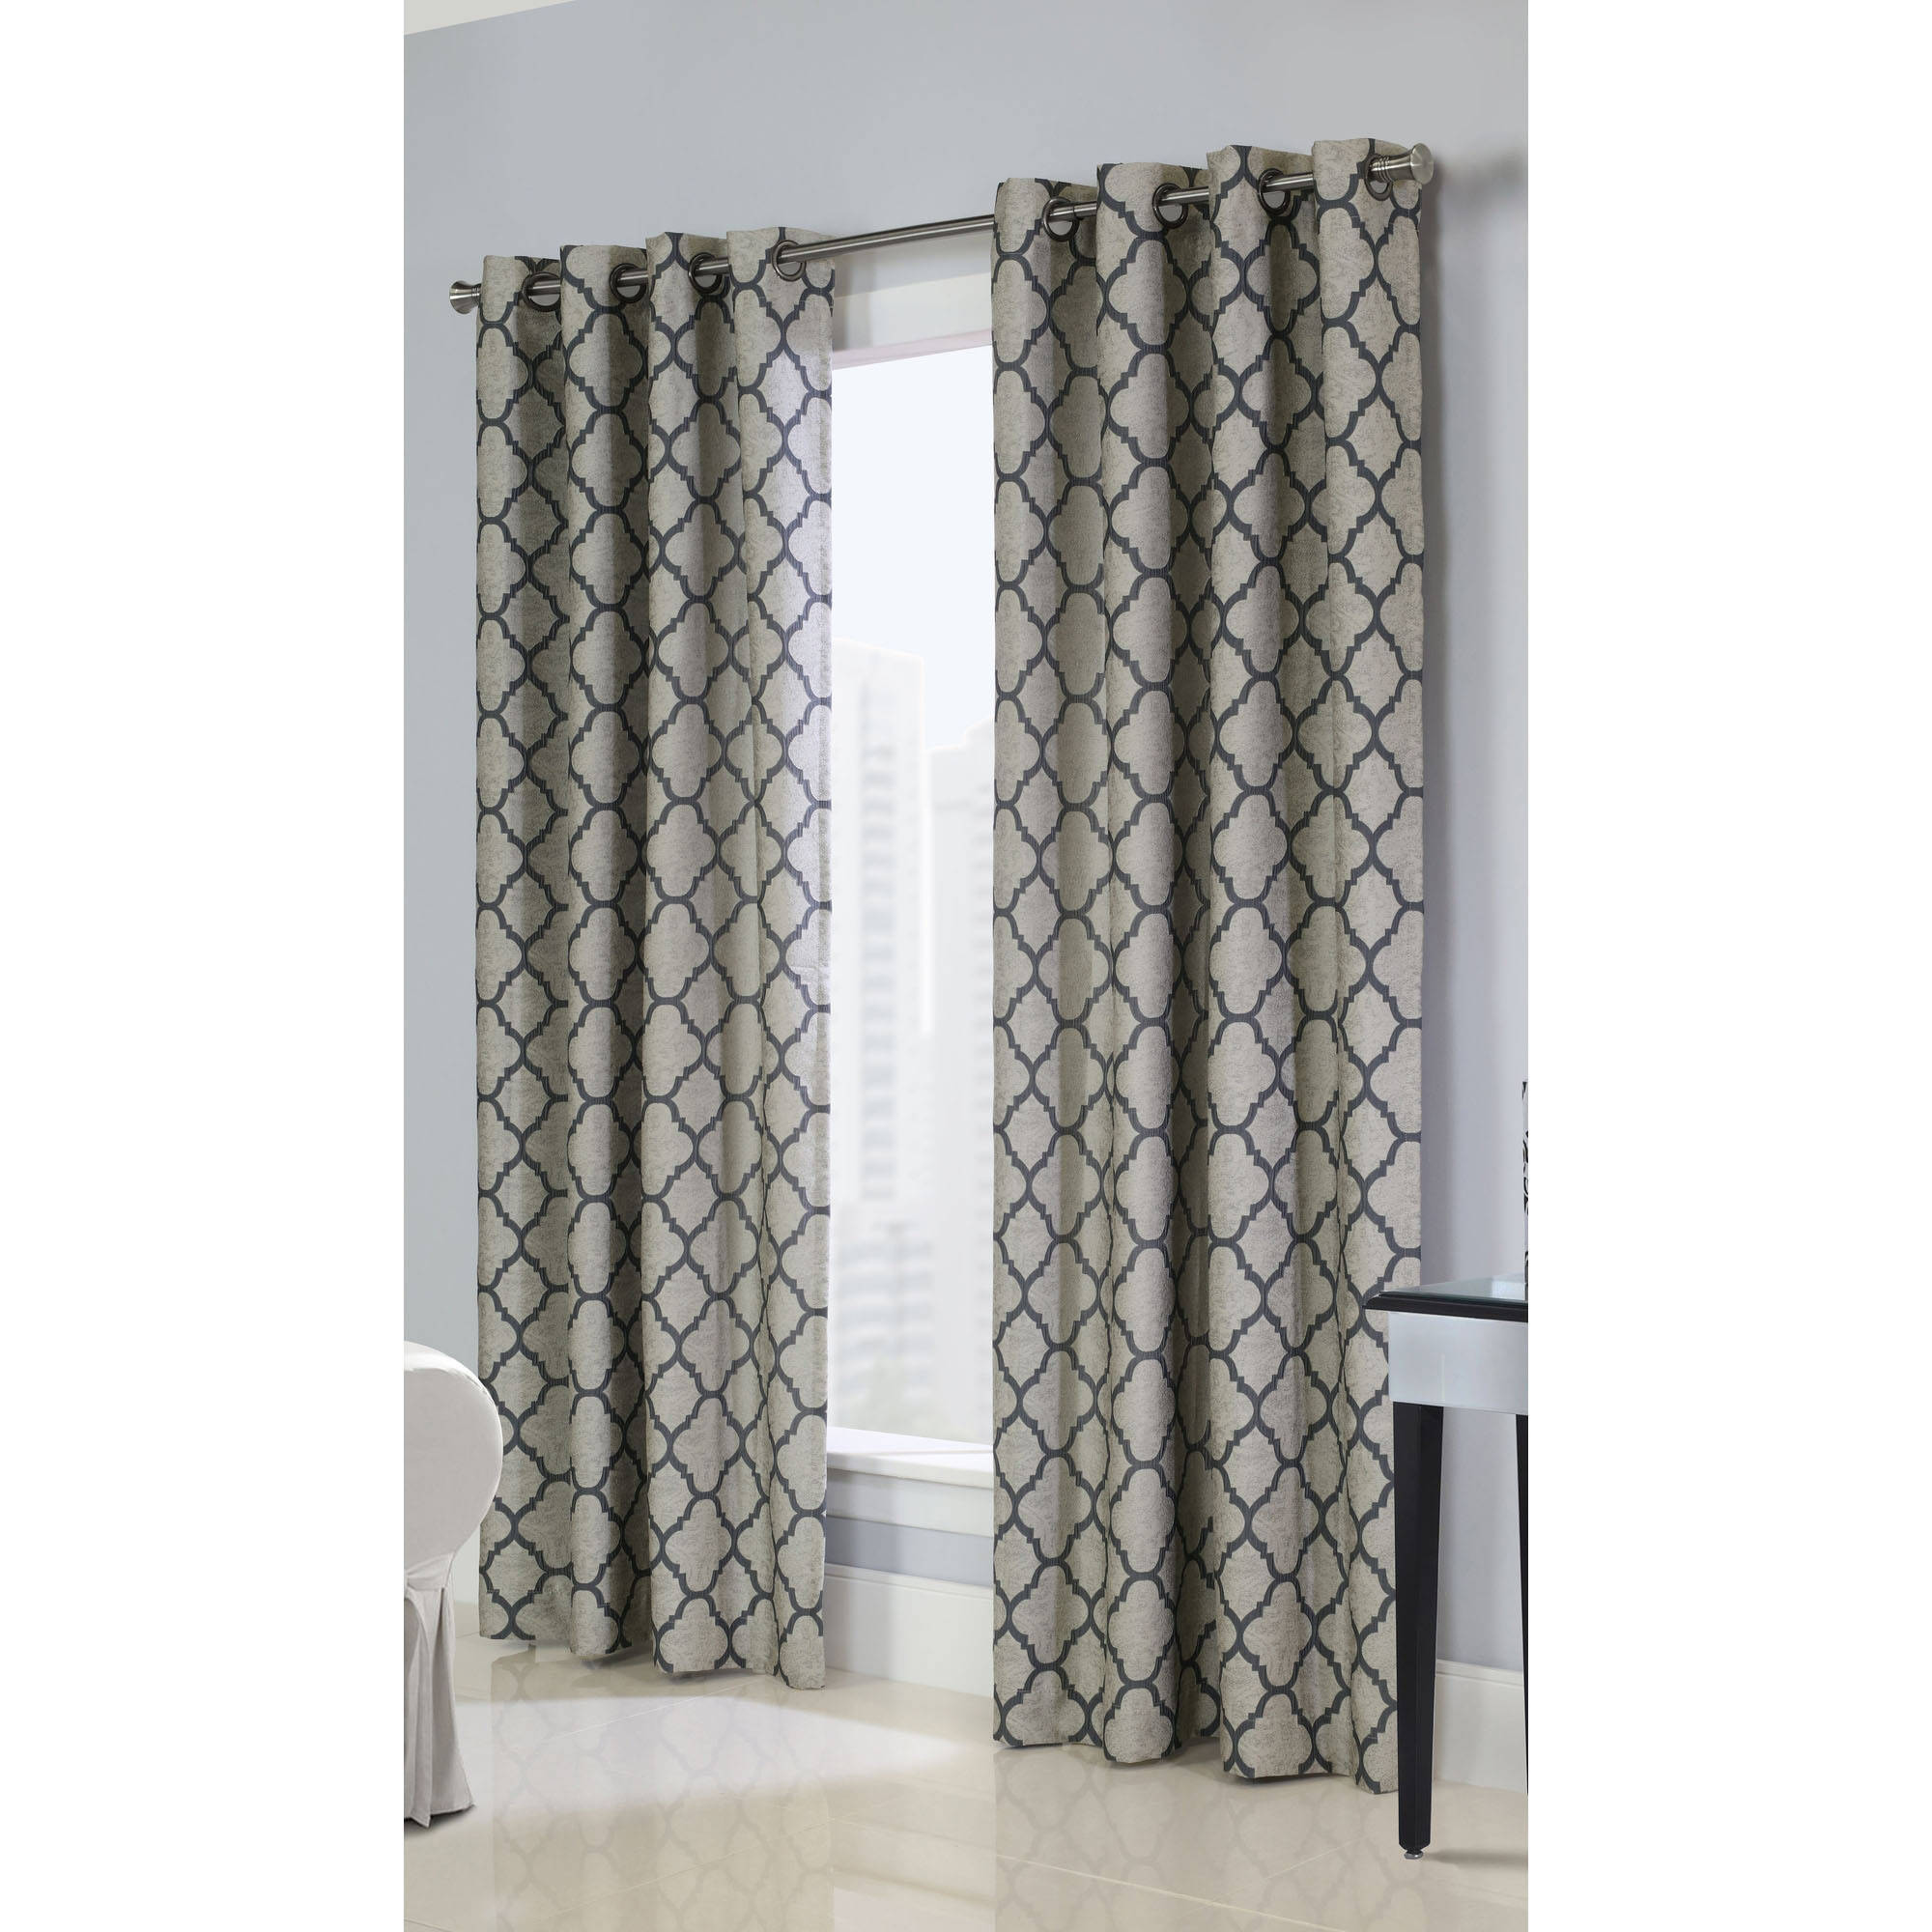 Common Wealth Home Fashions 71258-109-84-103 Clover Couture Jacquard Panels, 84' , Natural